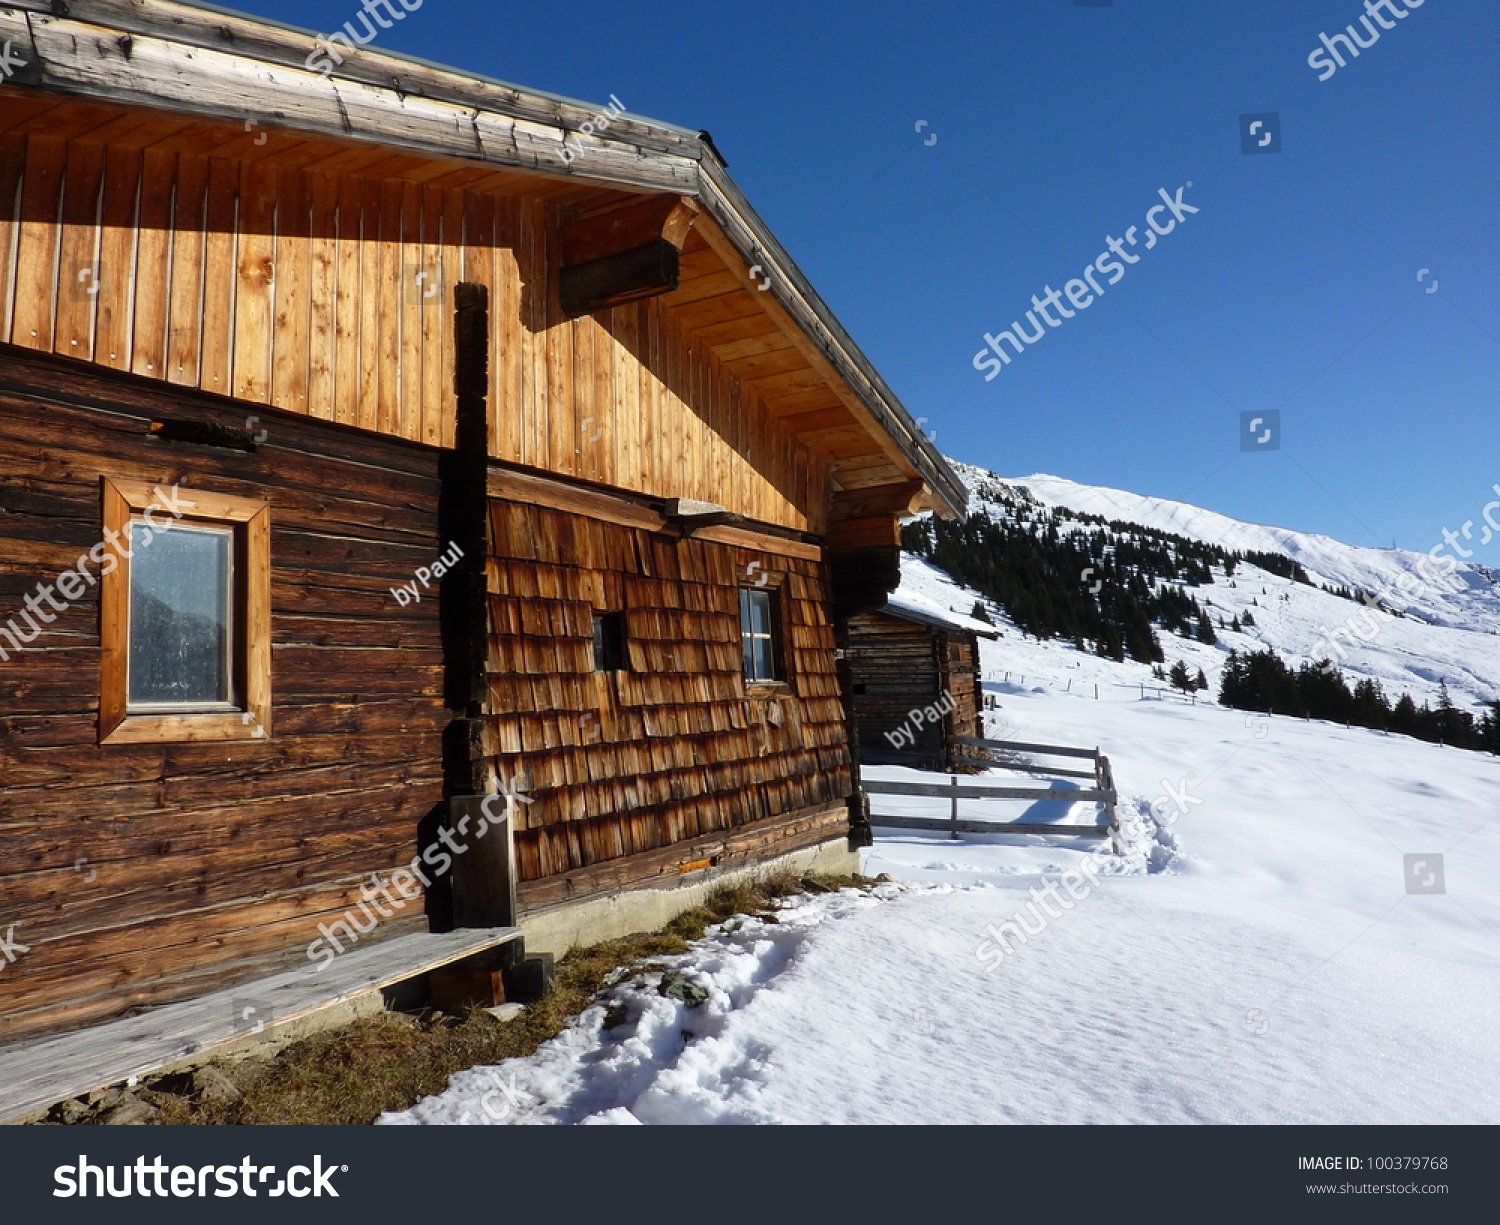 ski lodge in winter - photo #5